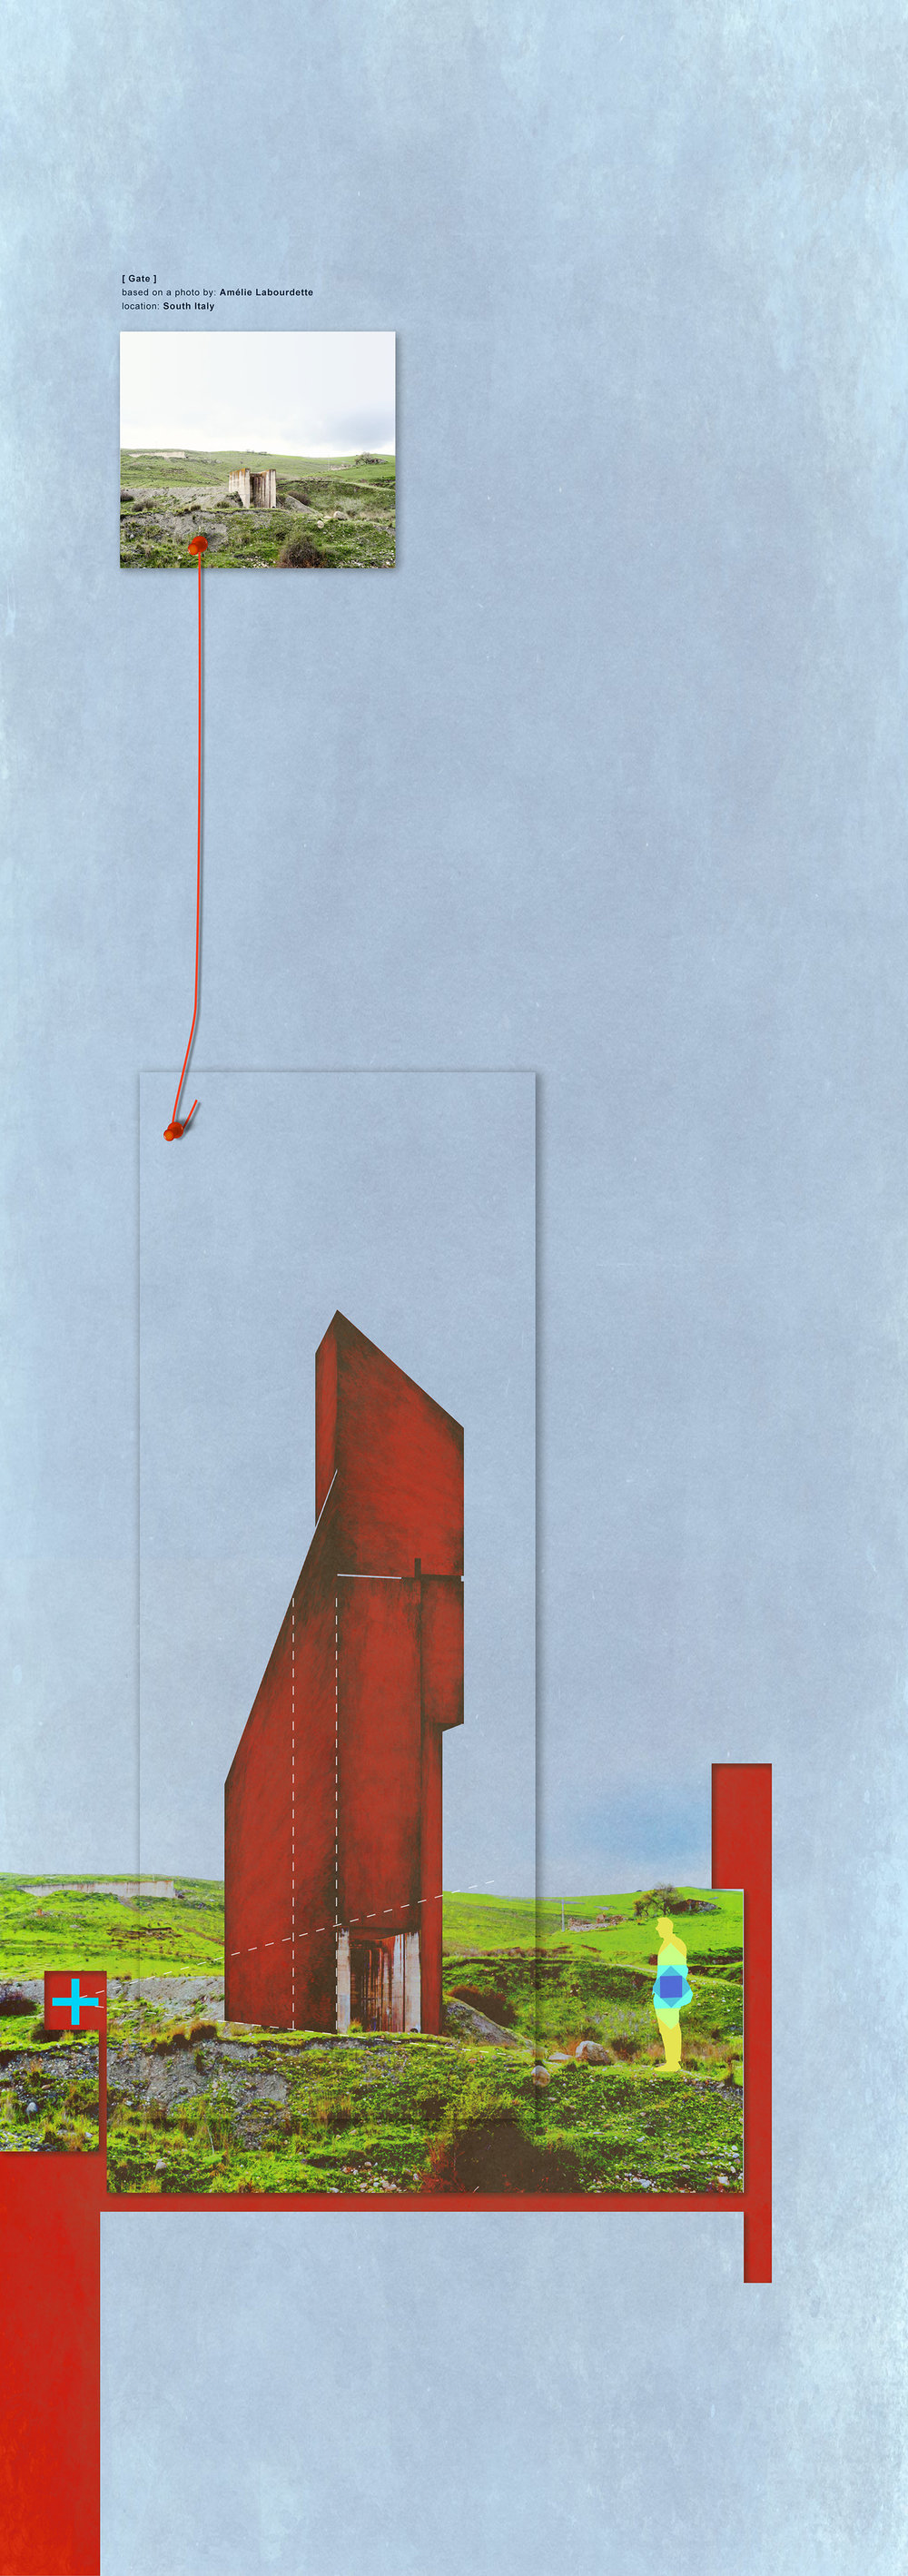 hazem-talaat-[re]thinking [re]drawing  [un]finished architecture-5.jpg